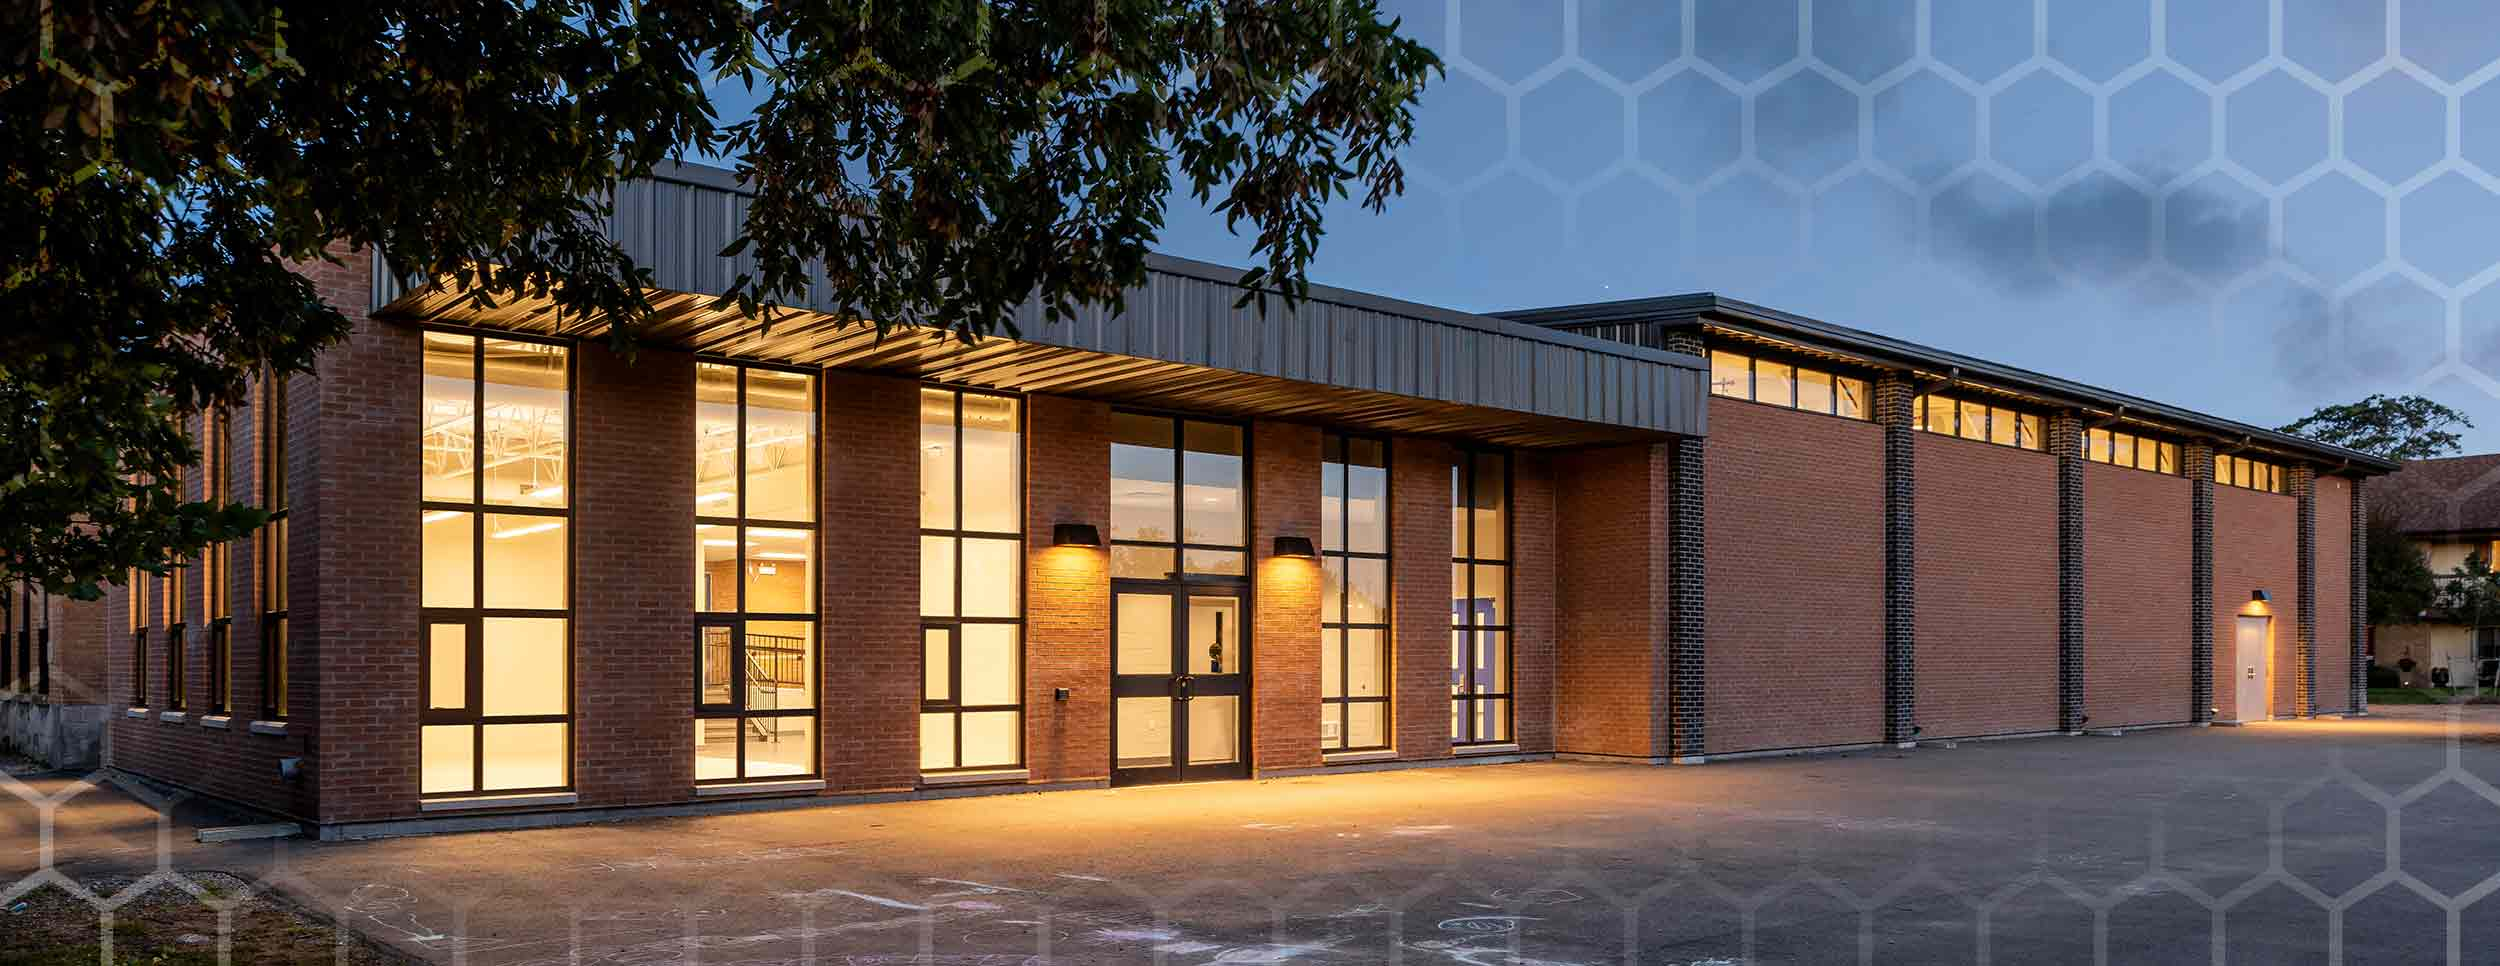 Covenant School, exterior evening photo showing front of the building with an interior room to the left lit up through the windows. Brown Brick facade and black window outlines